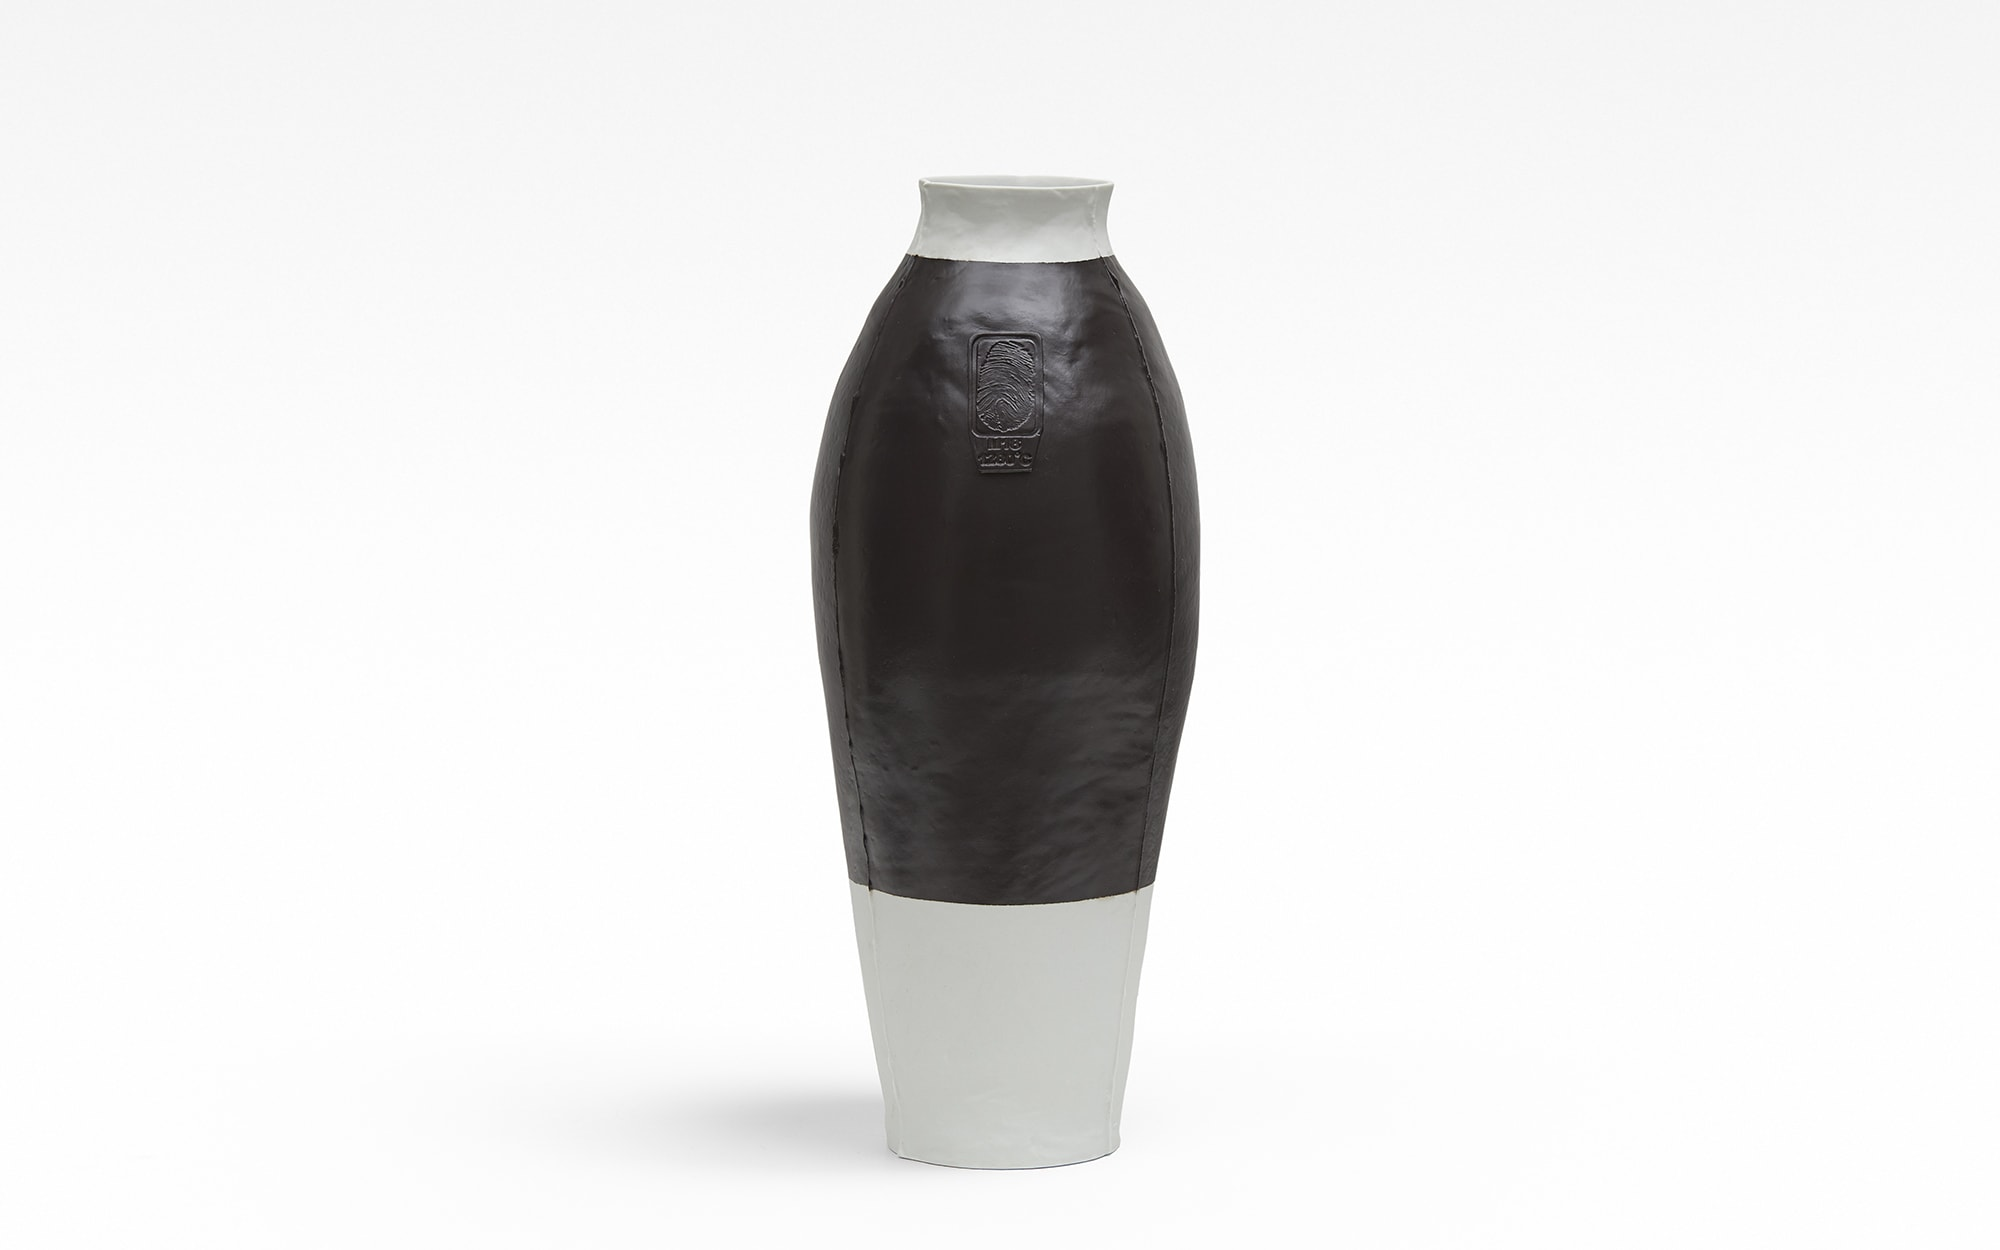 Hella Jongerius Colored Vases RAL 8019 (GREY BROWN)